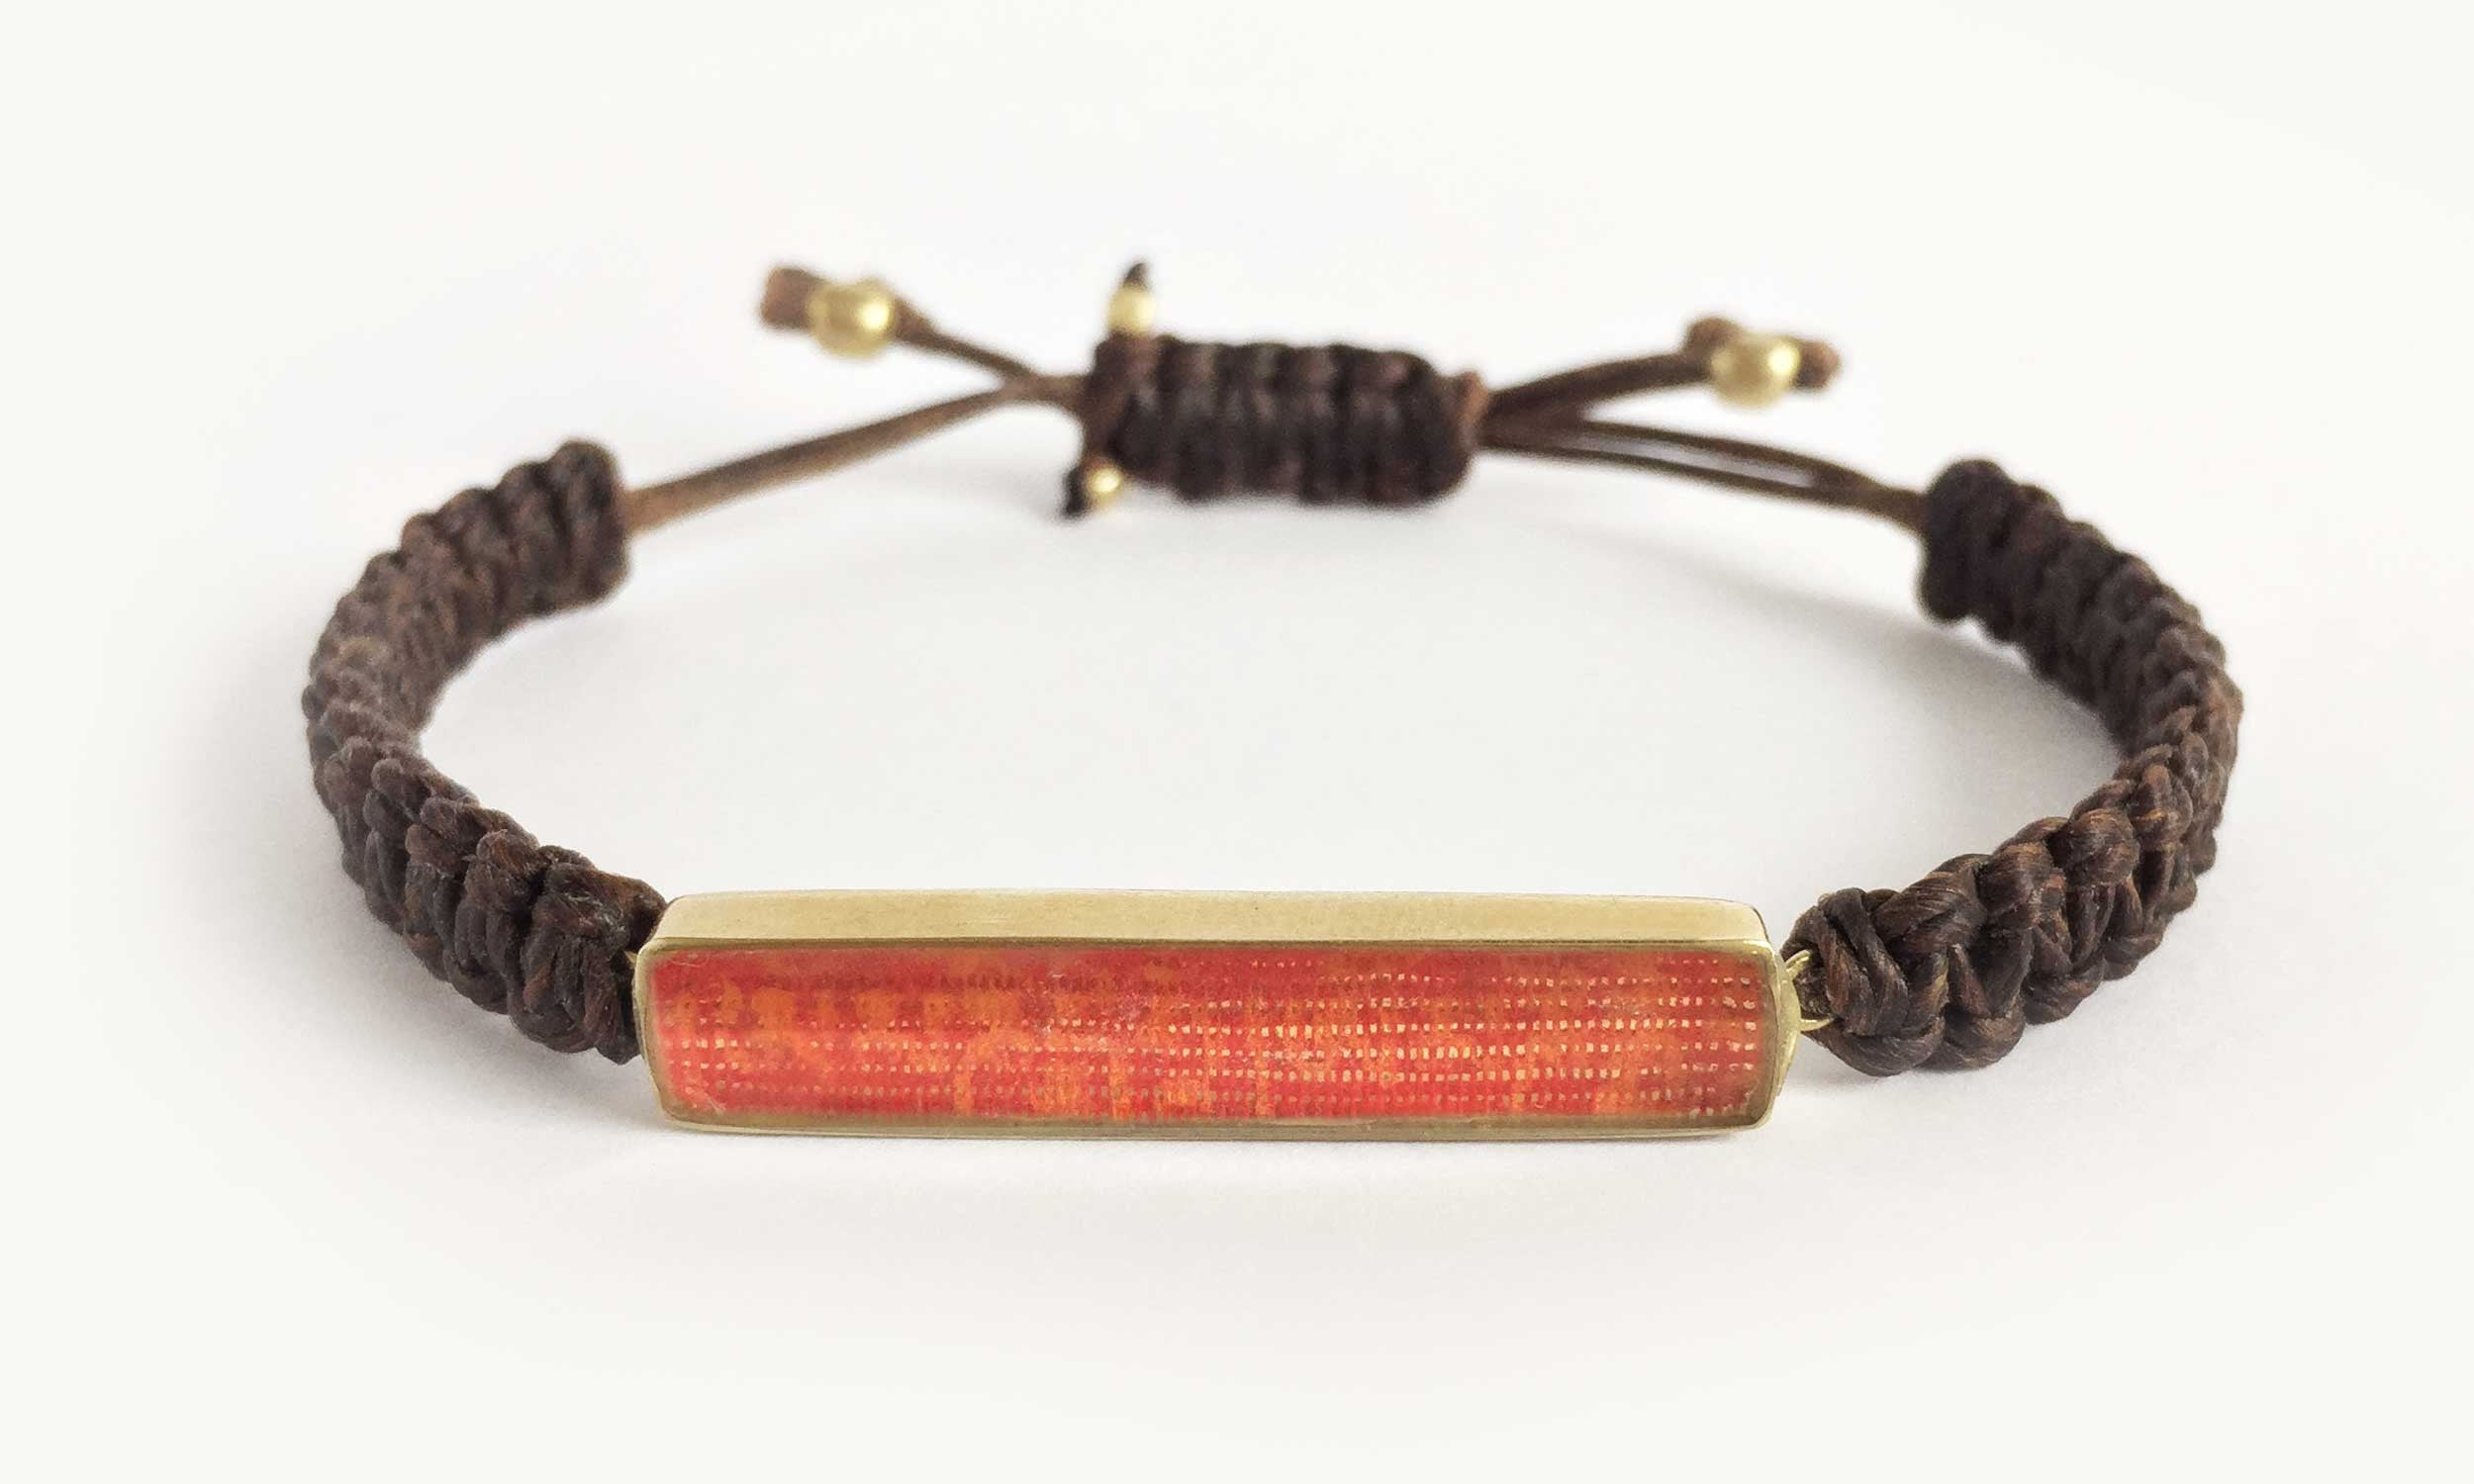 FIRE Bracelet : Fulfillment of Wishes